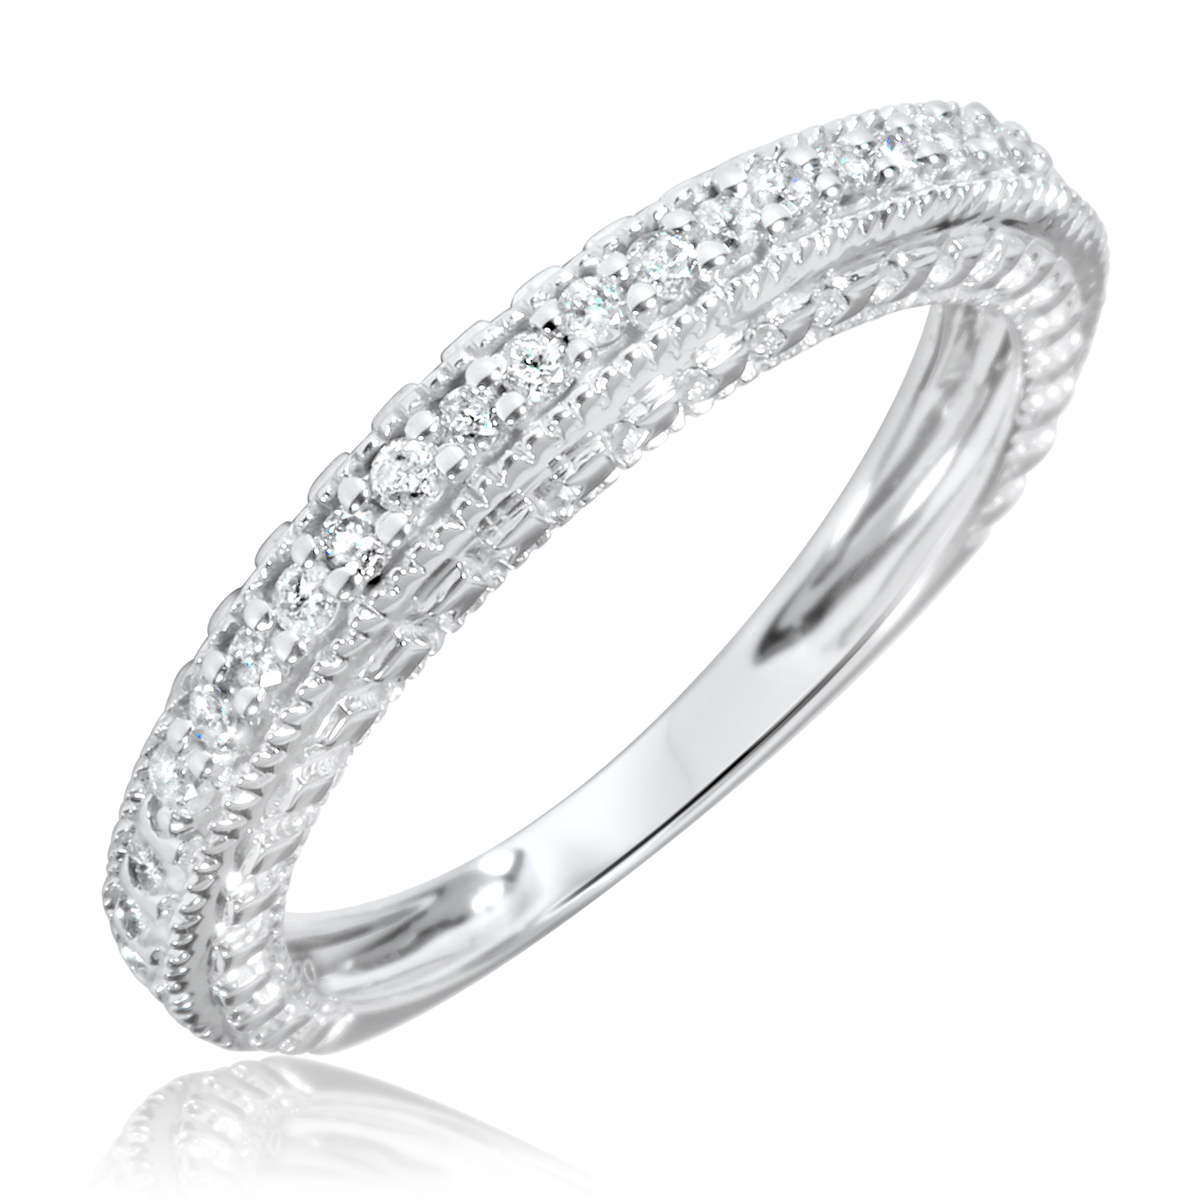 15 carat tw diamond womens wedding ring 14k white gold my trio rings bt109w14kl